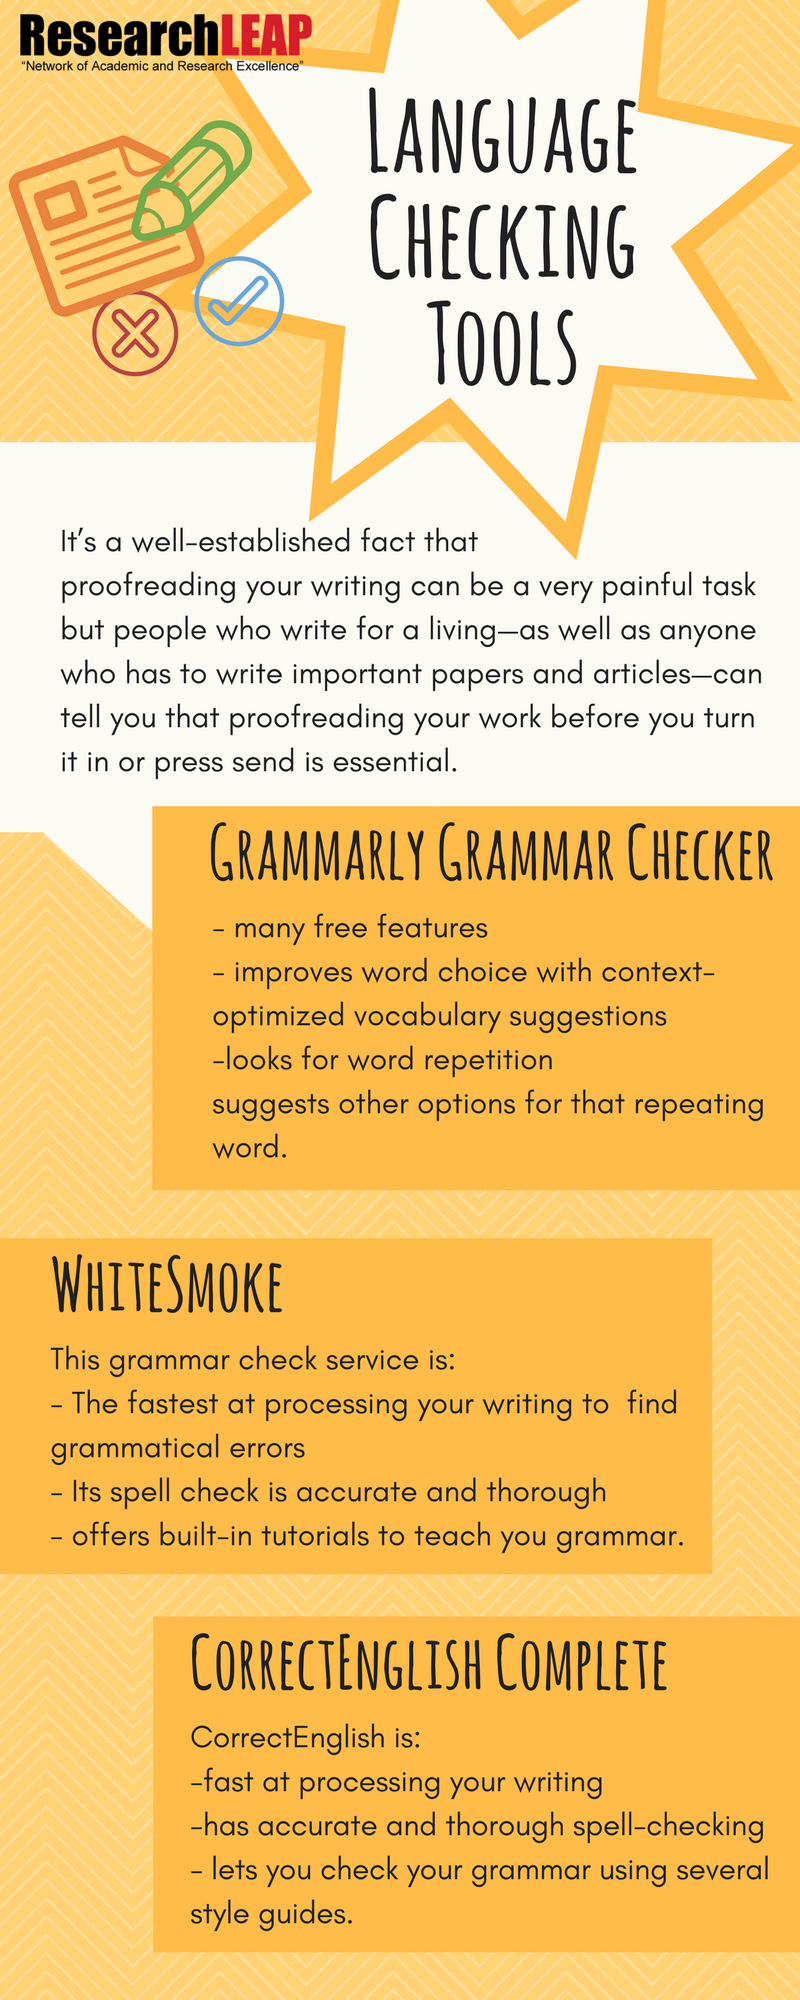 Language Checking Tool Make Sure You Do Not Have Any Mistake In Your Research Paper Acces Our Website W Academic Writing Interesting Information Good For Papers